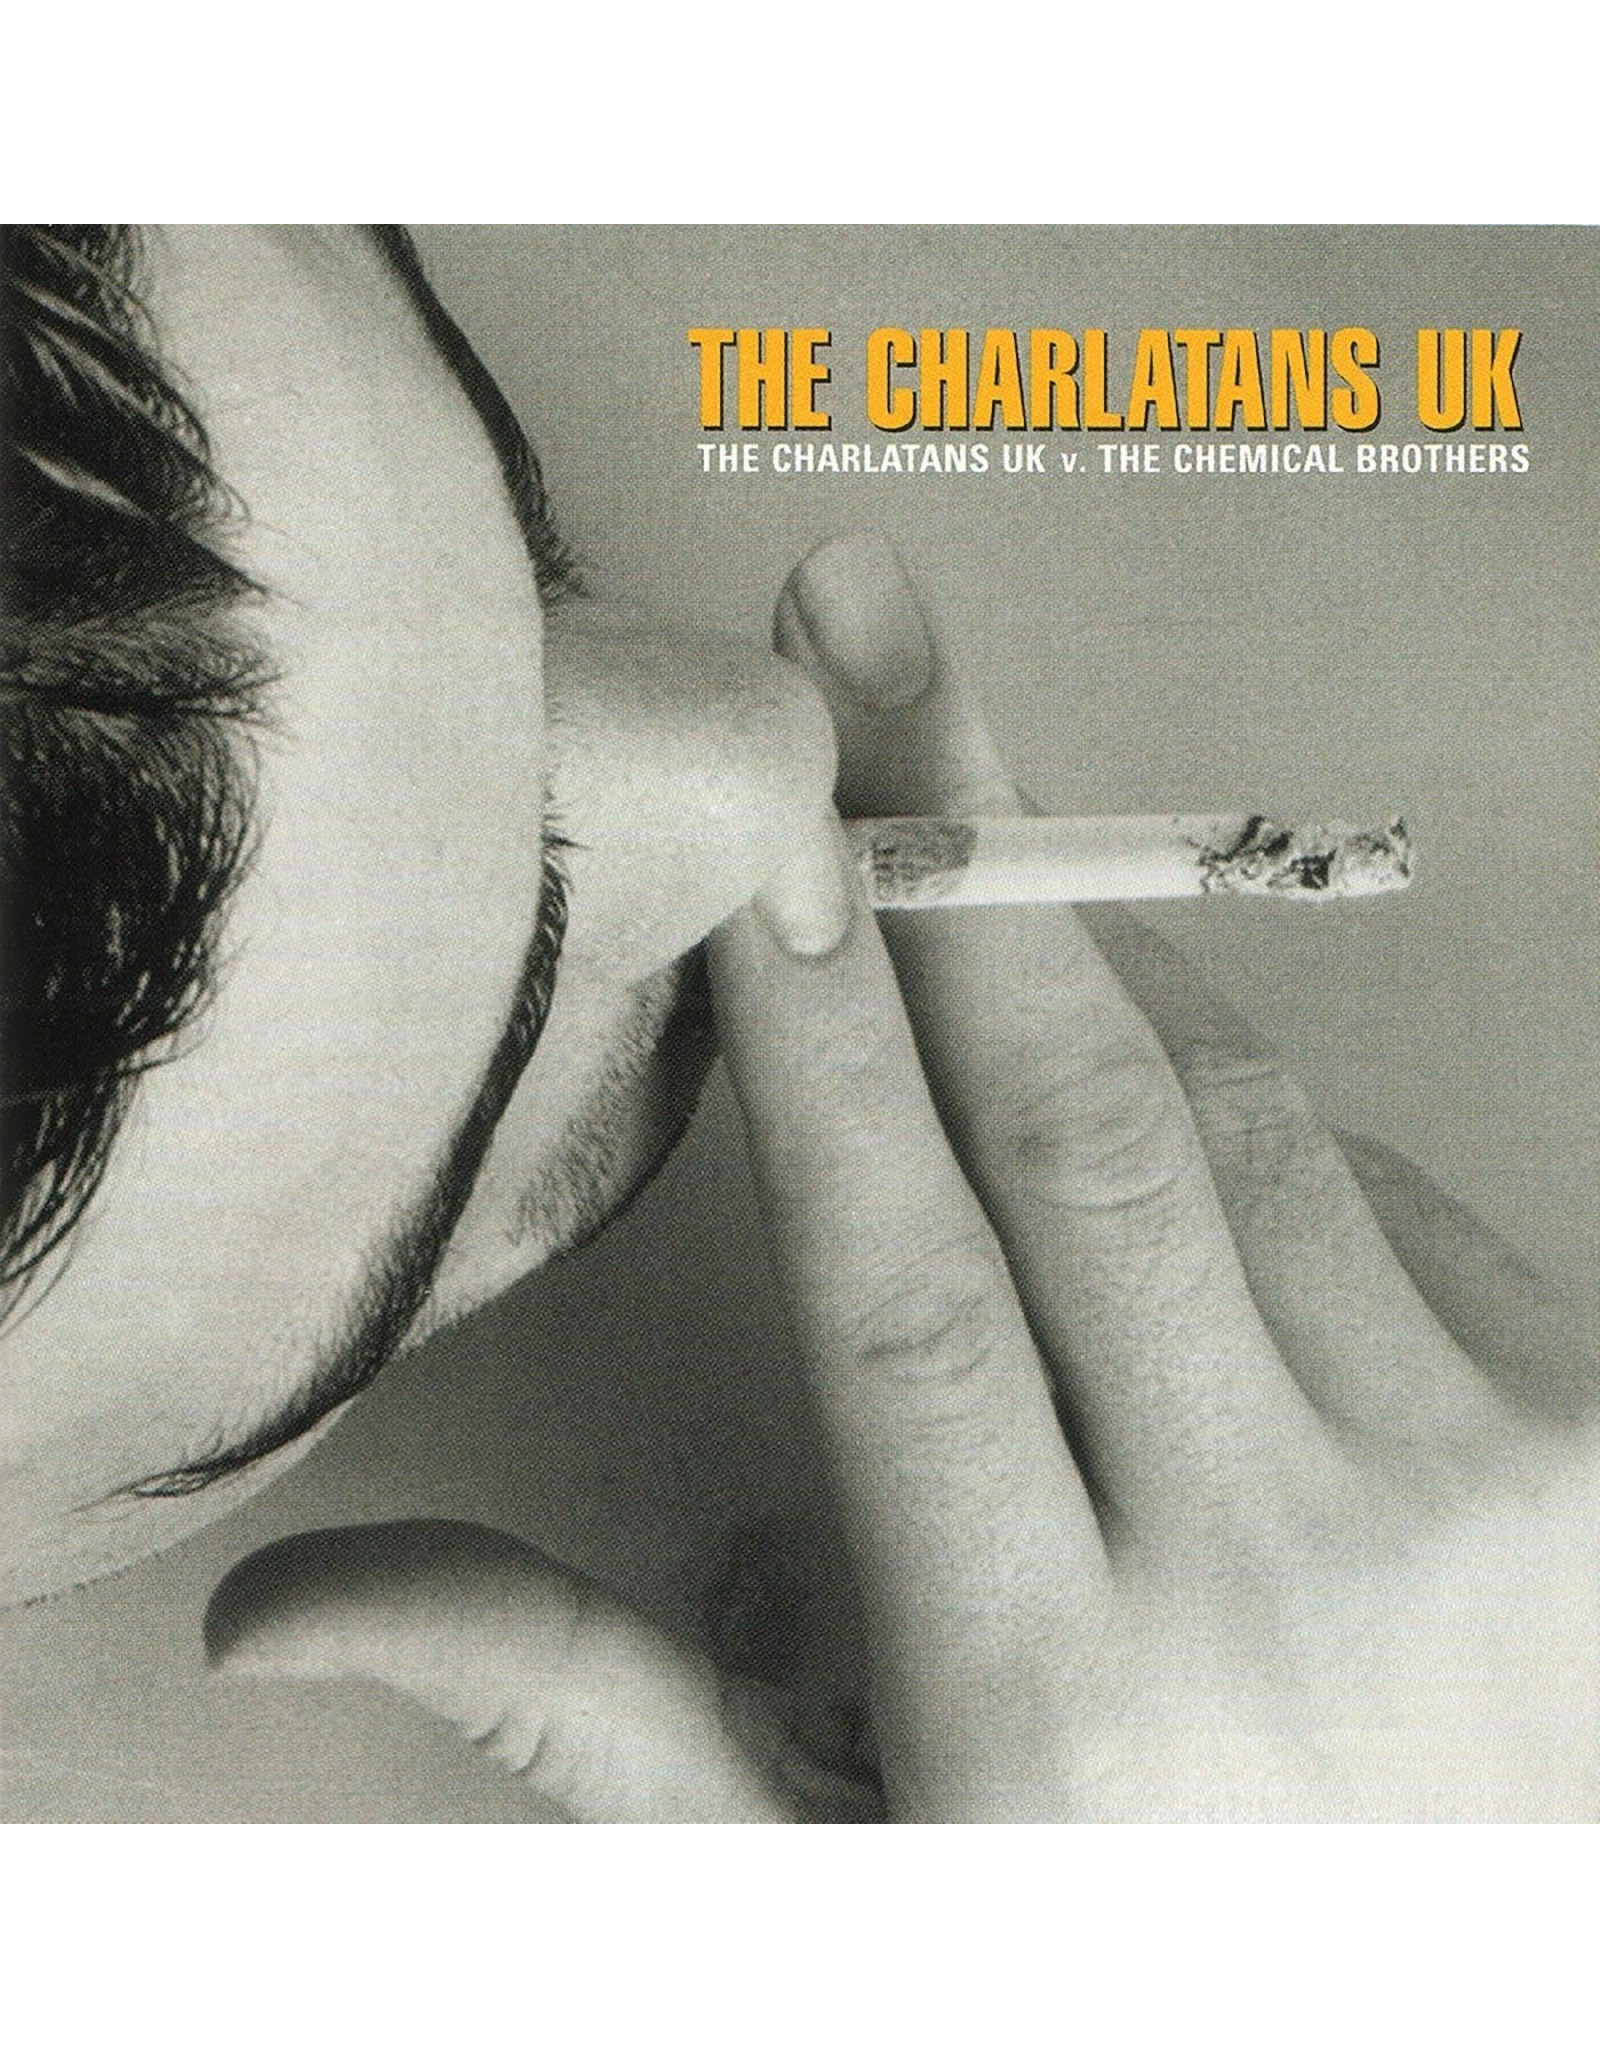 Charlatans UK - The Charlatans vs. the Chemical Brothers EP LP